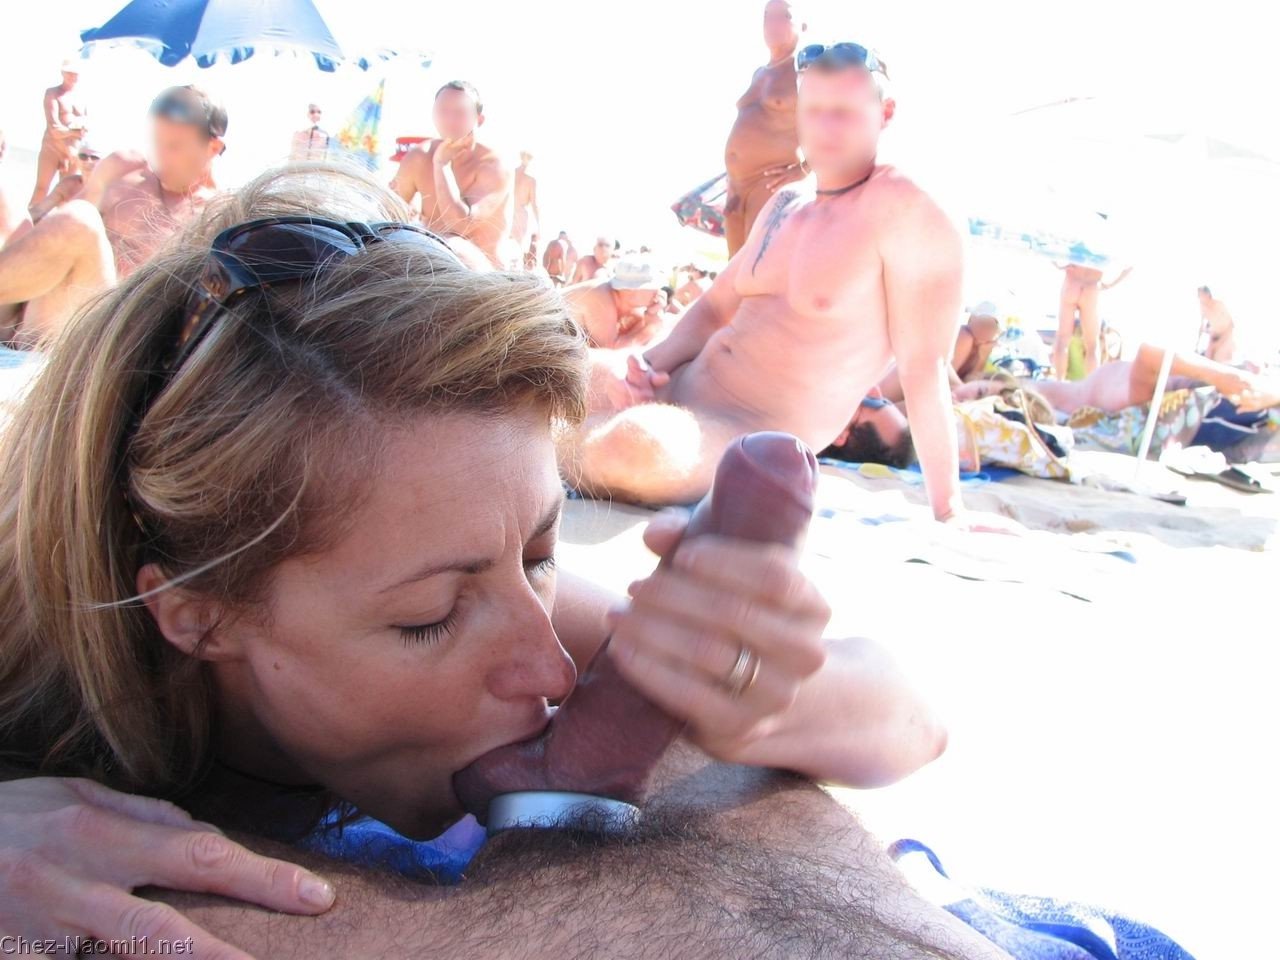 Crowded blowjob place in